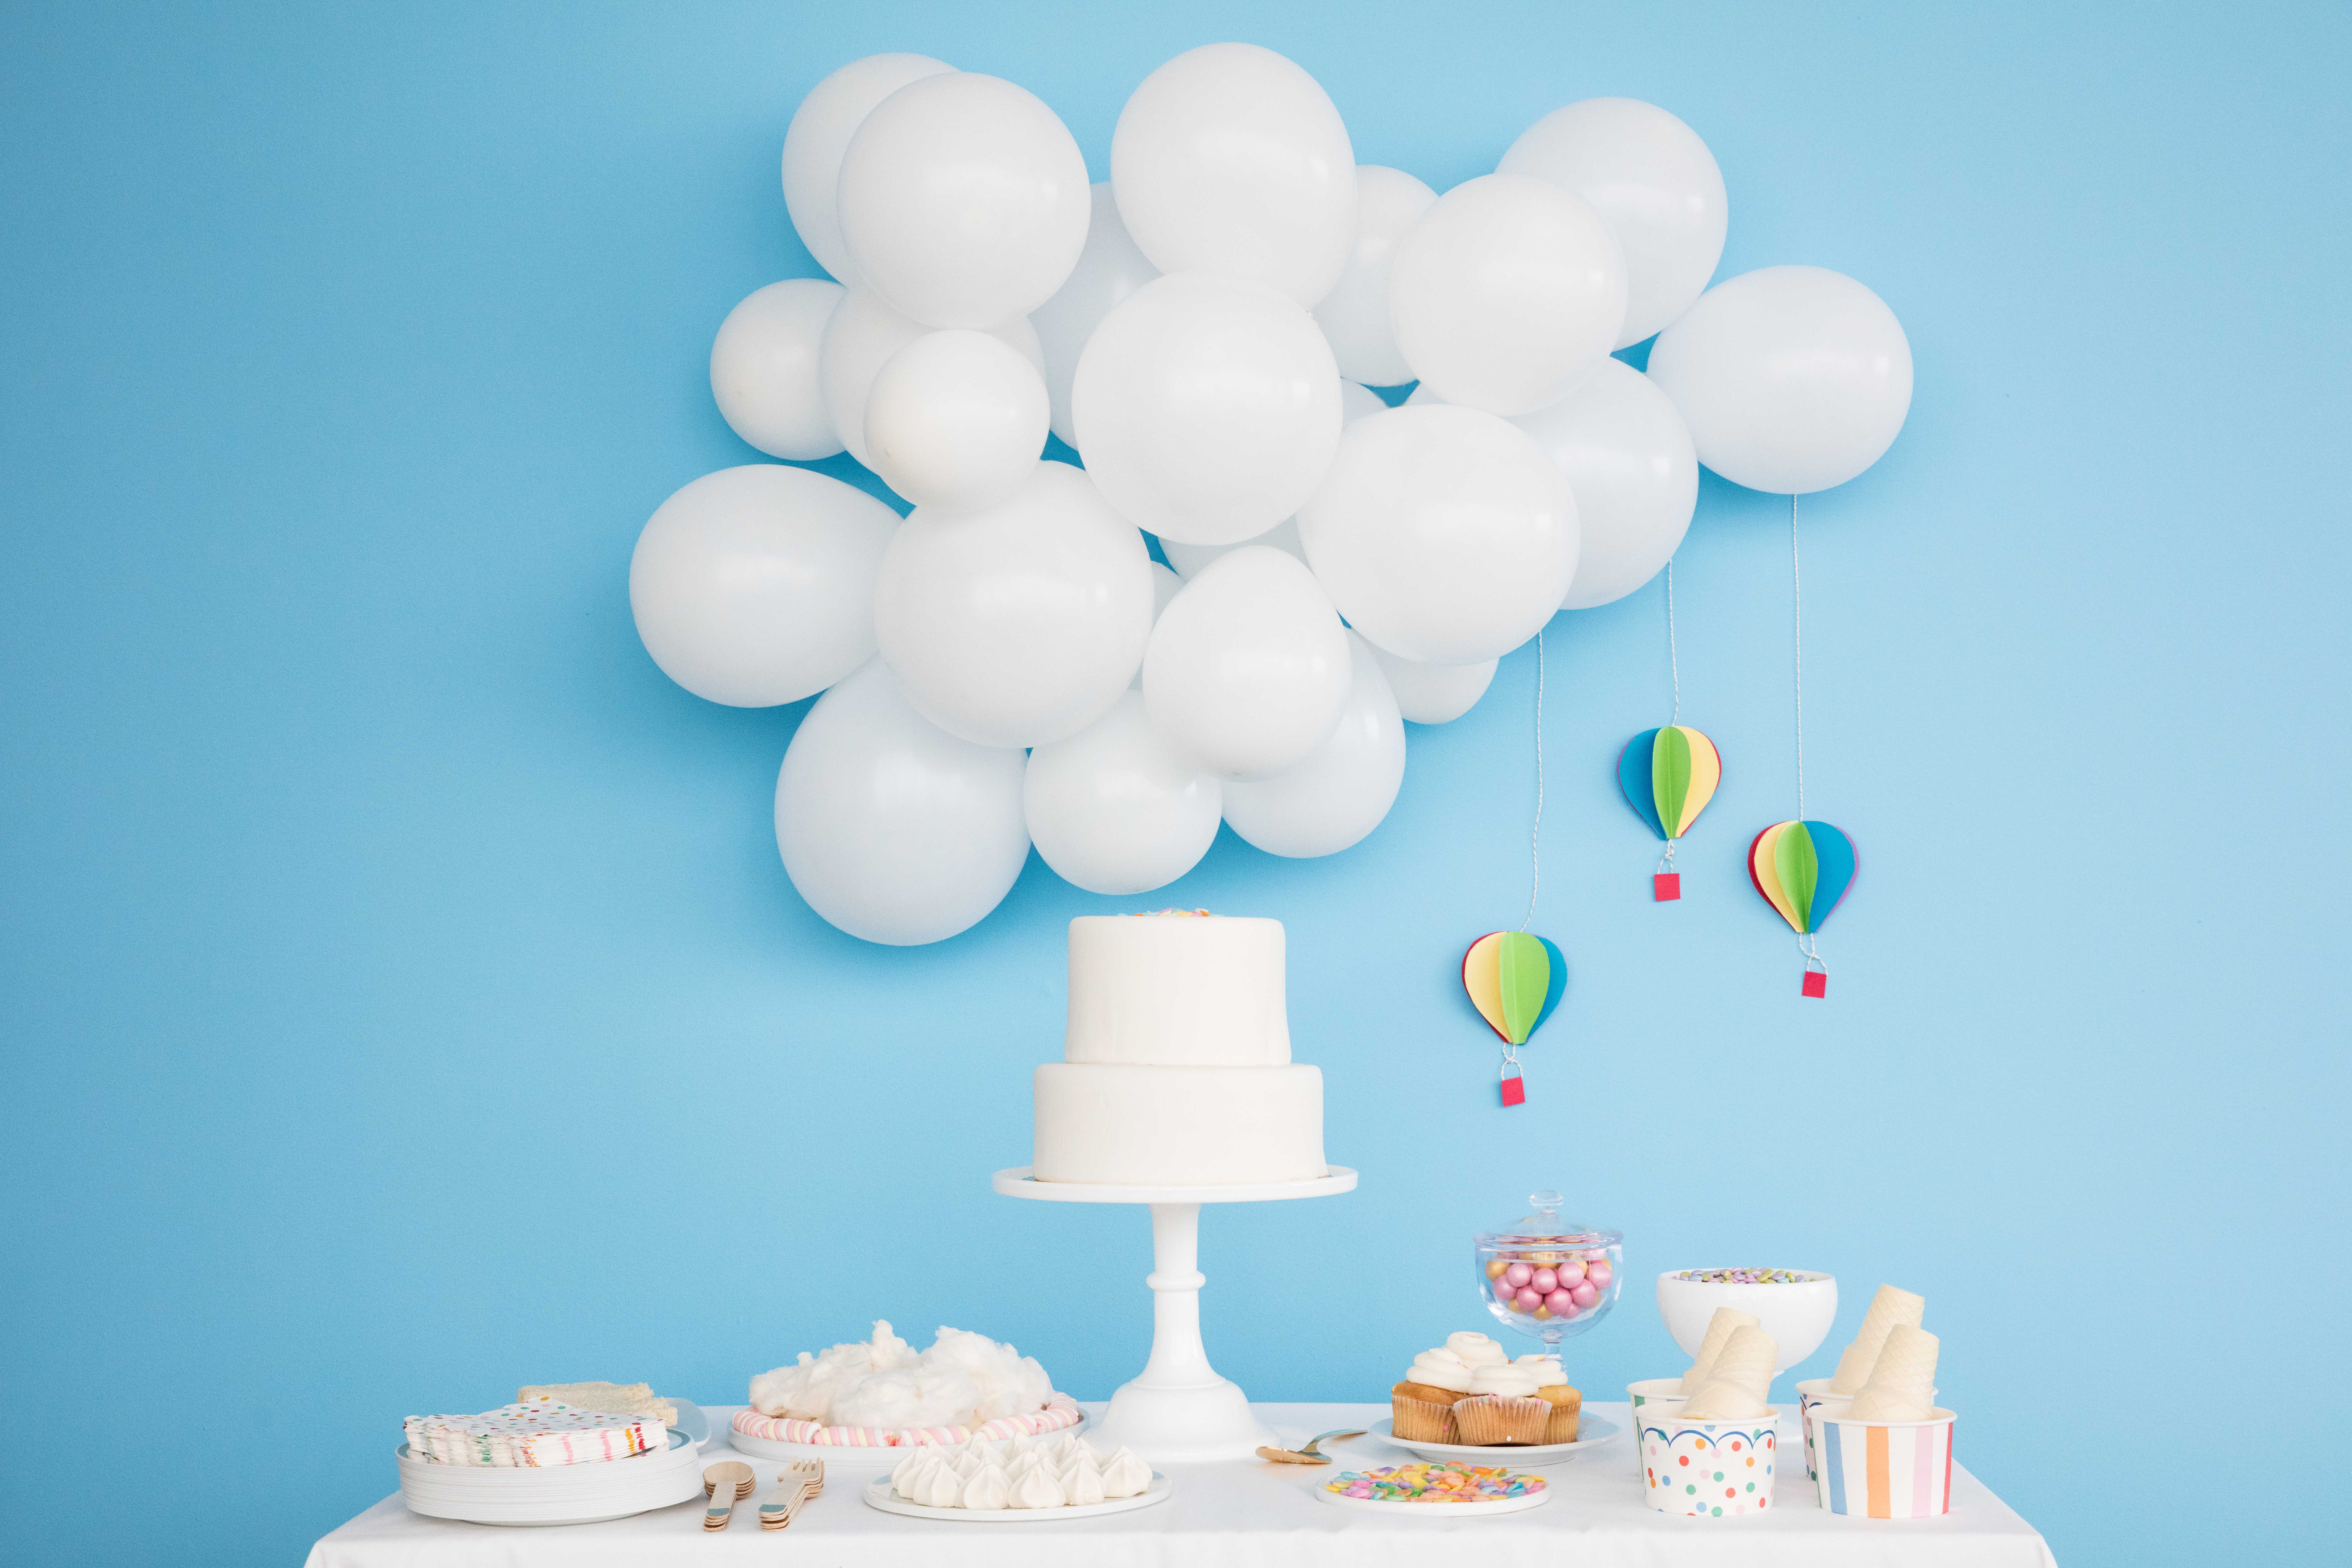 21 Balloon Ideas That'll Give Your Next Party Extra Pop ...